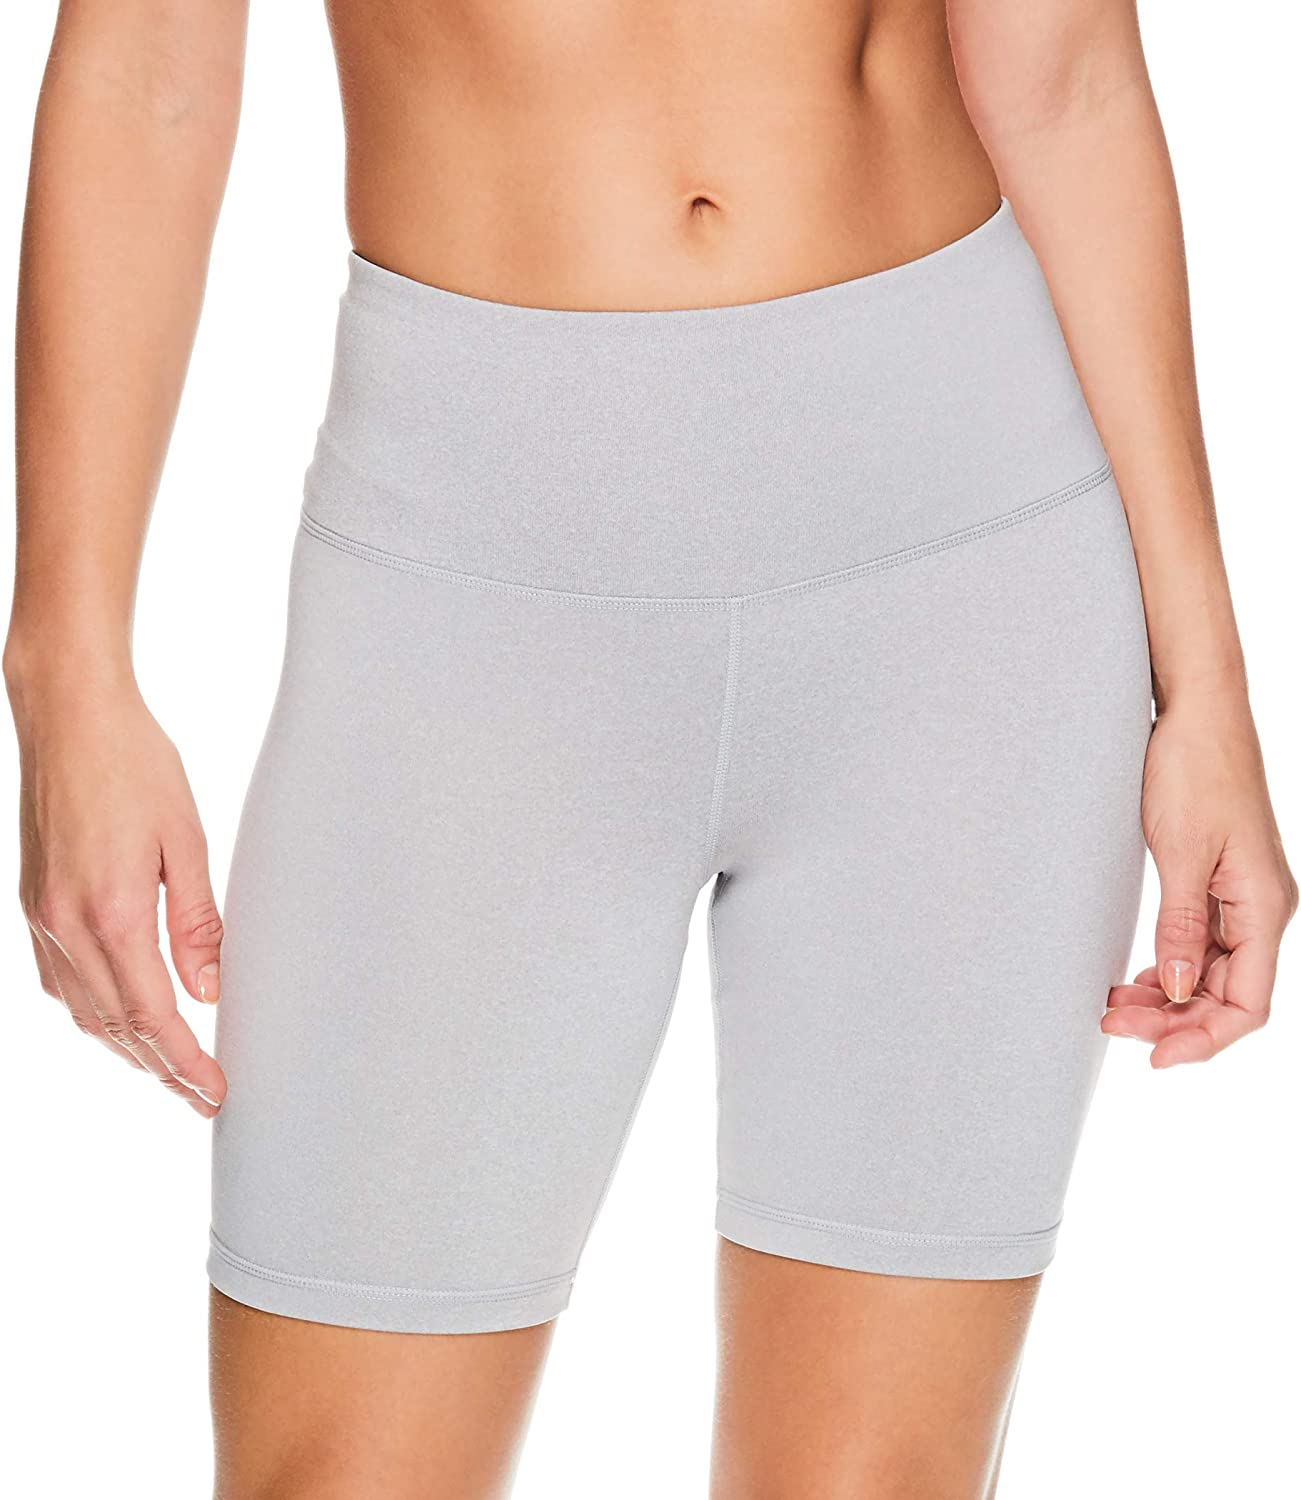 Reebok Women's Compression Running Shorts - Easy-to-use Waisted Perform High Japan Maker New